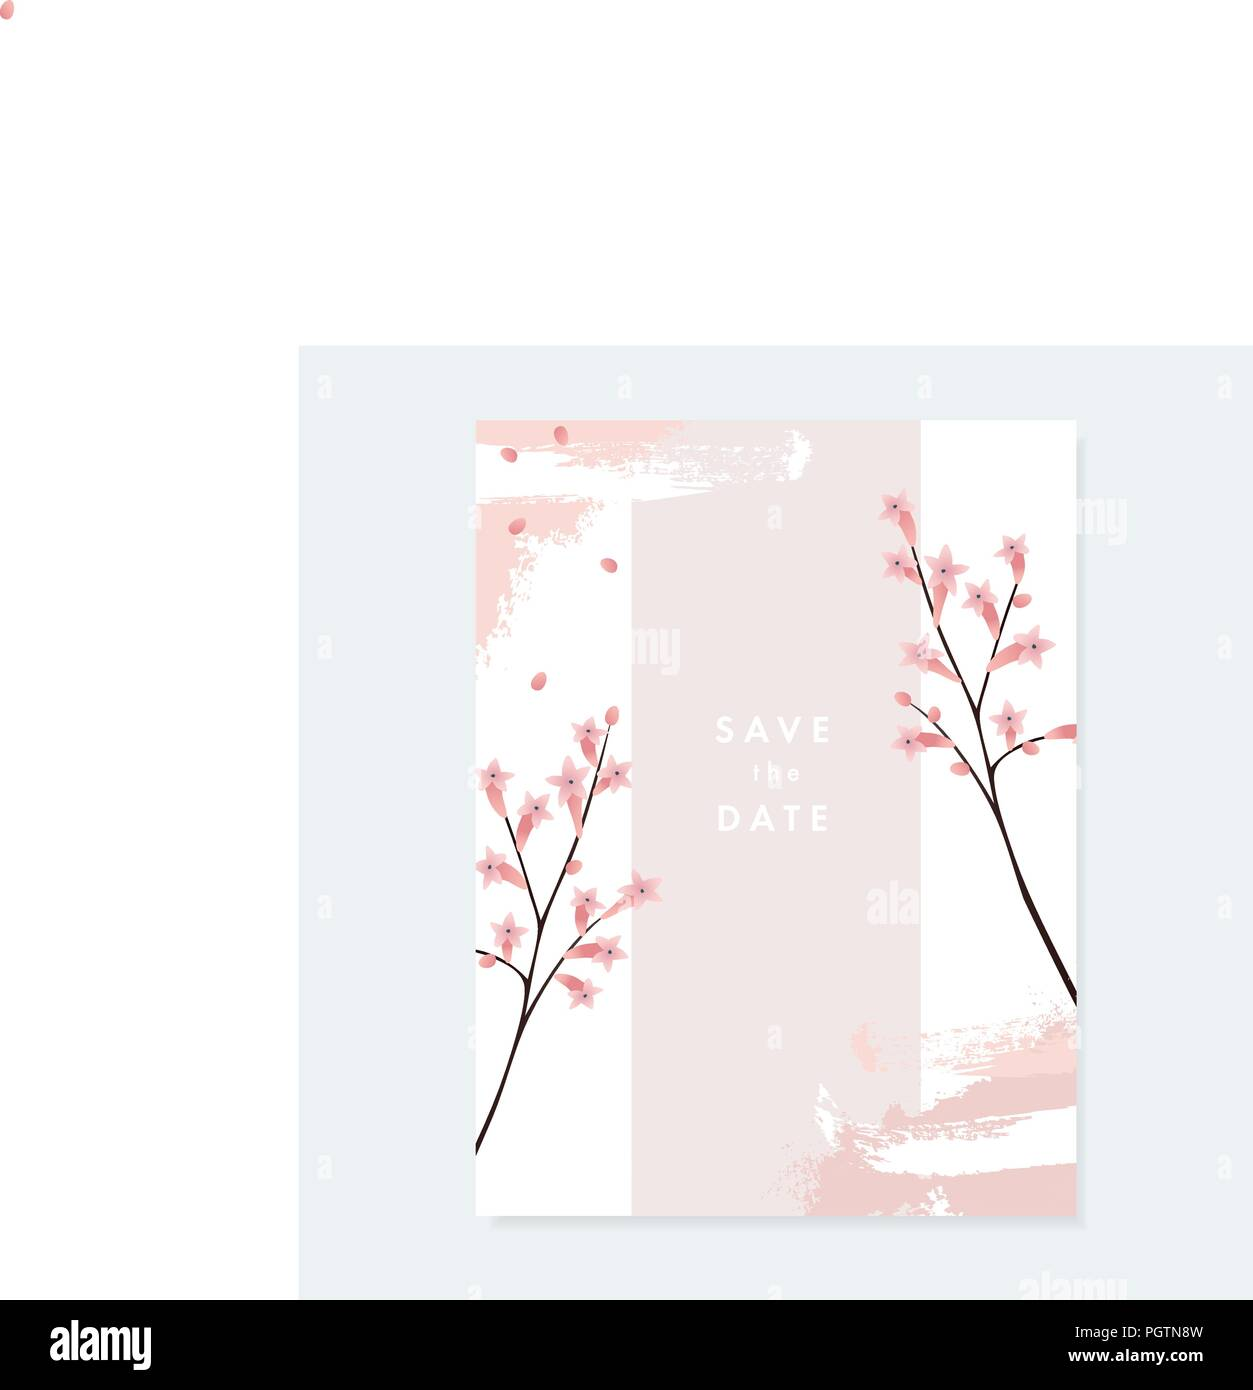 https www alamy com floral wedding invitation greeting card with pale pink blooming flowers and artistic brush stroke texture on white background simple botanical design vintage vector illustration brochure template image216902473 html